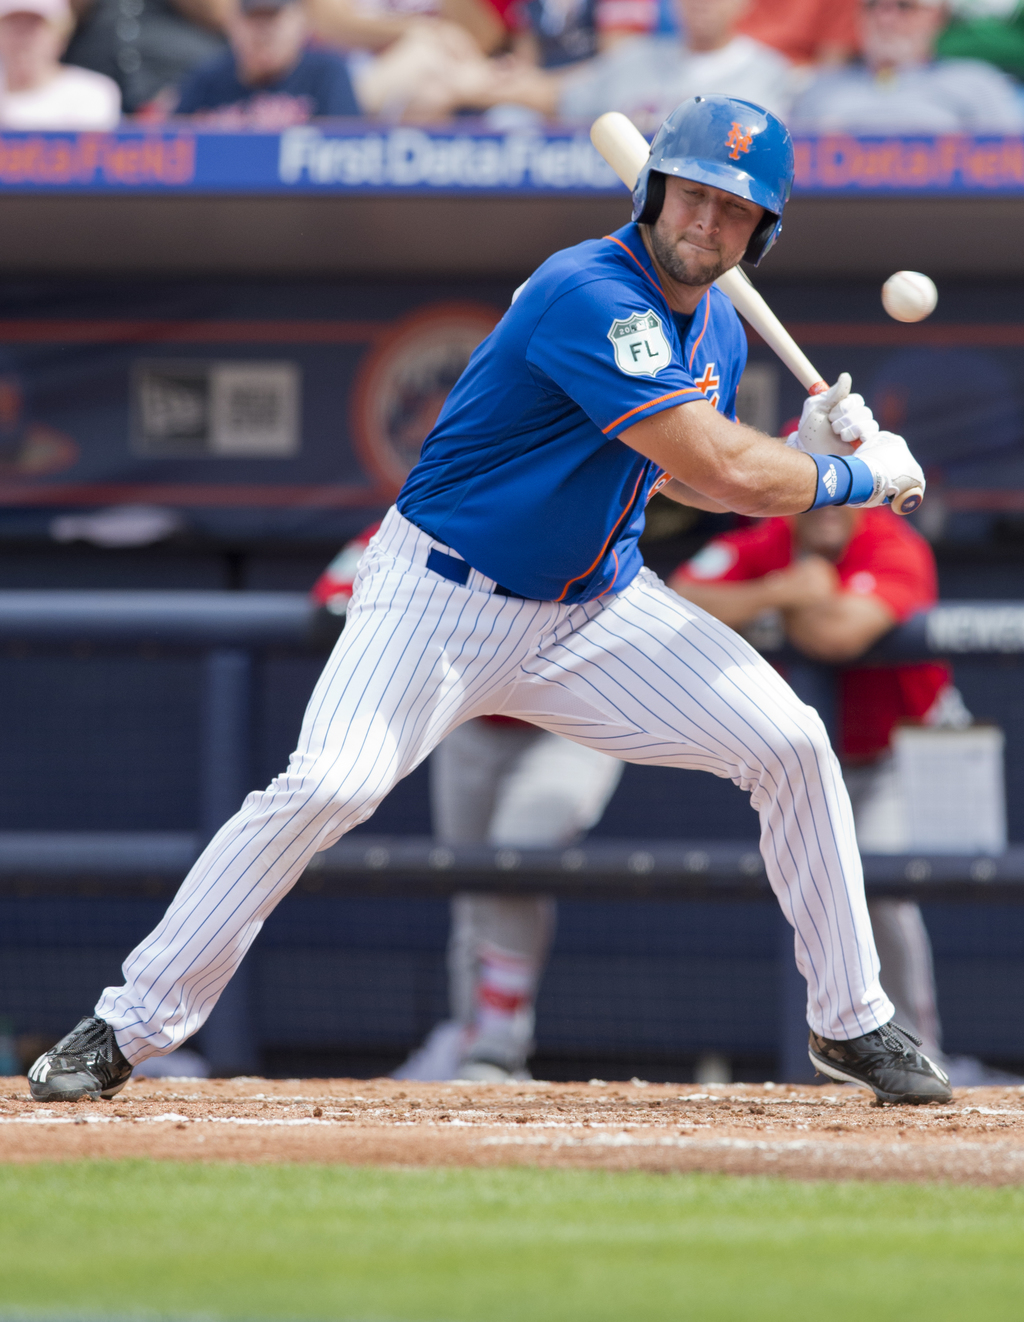 New York Mets designated hitter Tim Tebow lets a pitch go by during his second at-bat in the team's spring training baseball game again...